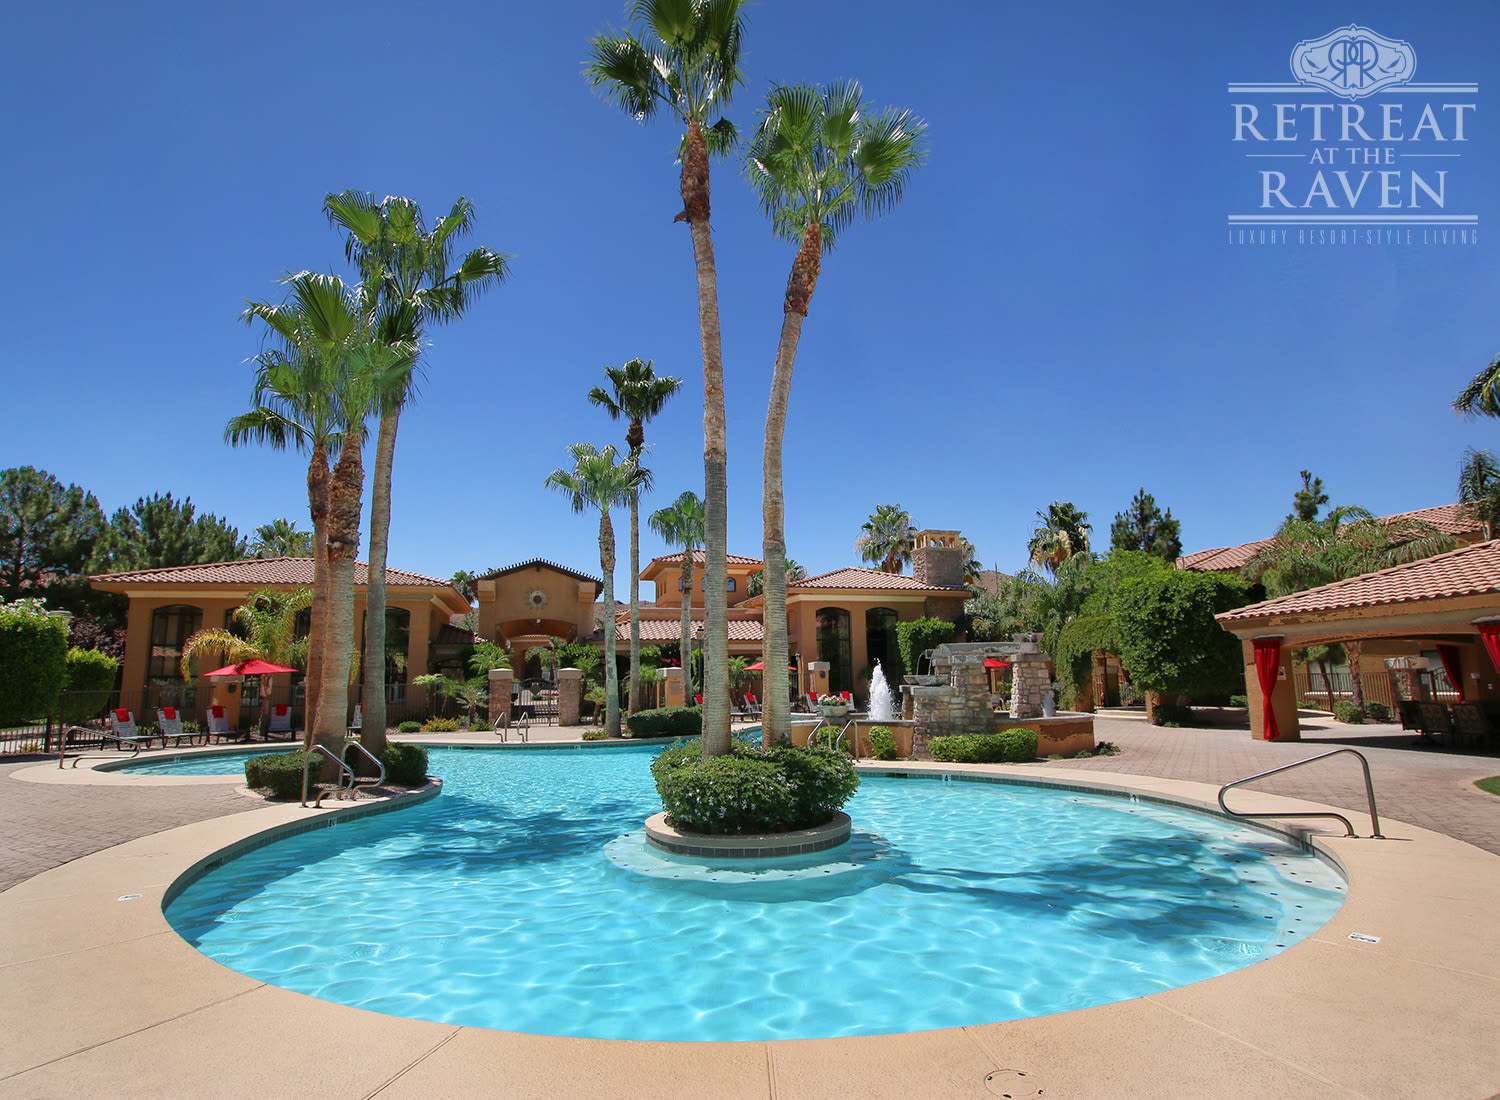 The Retreat at the Raven apartments in Tempe, Arizona